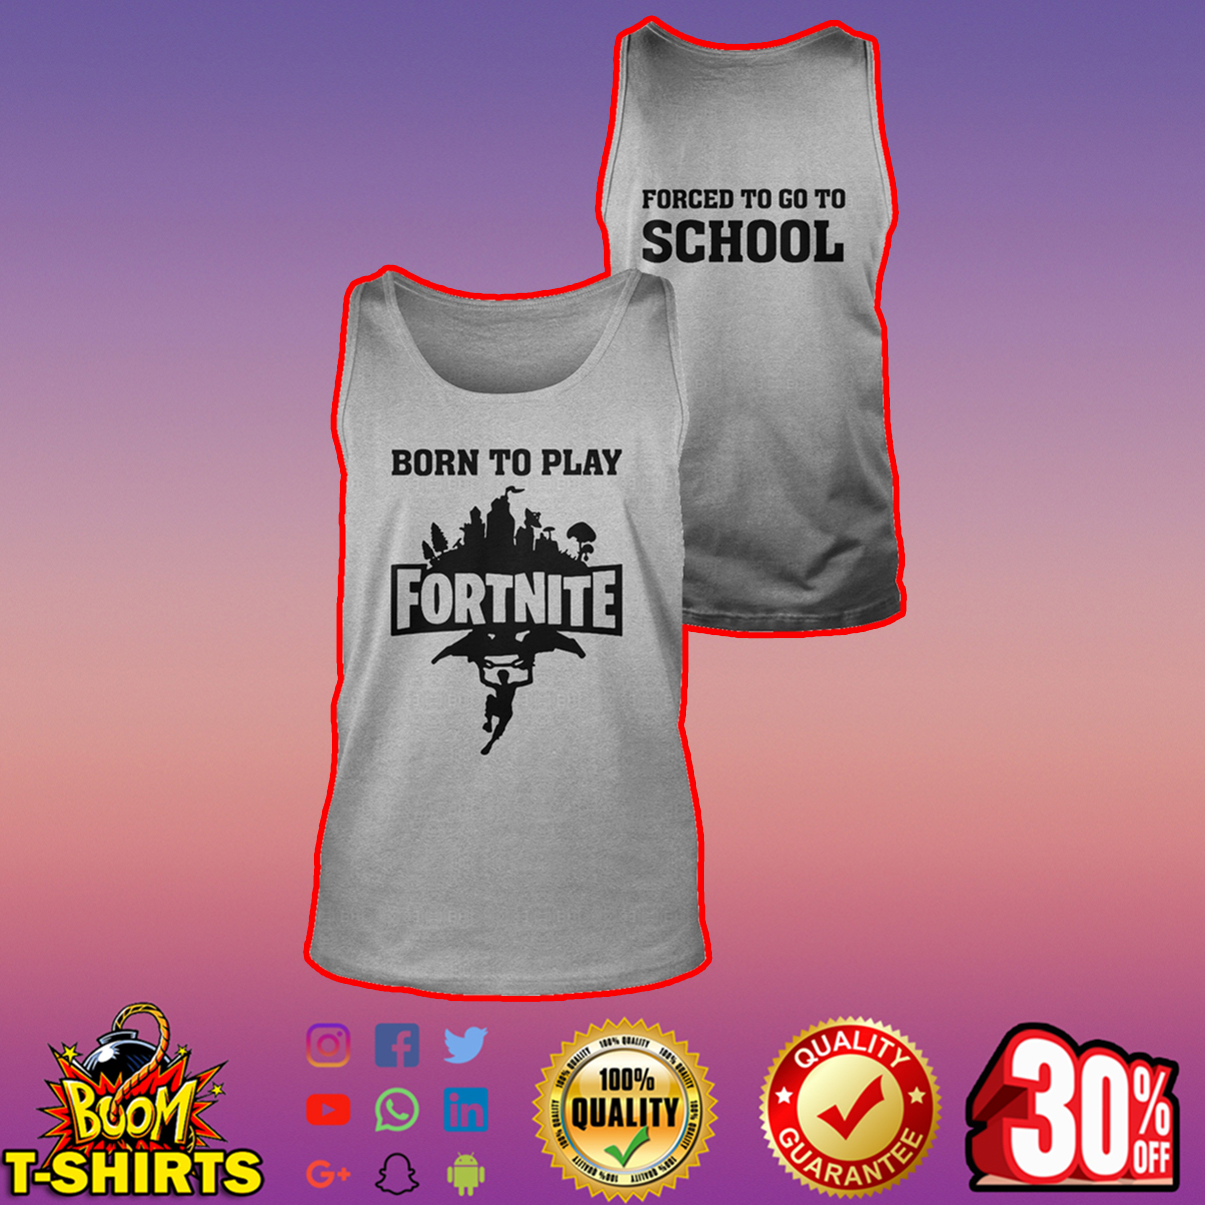 Born to play Fortnite forced to go to school tank top